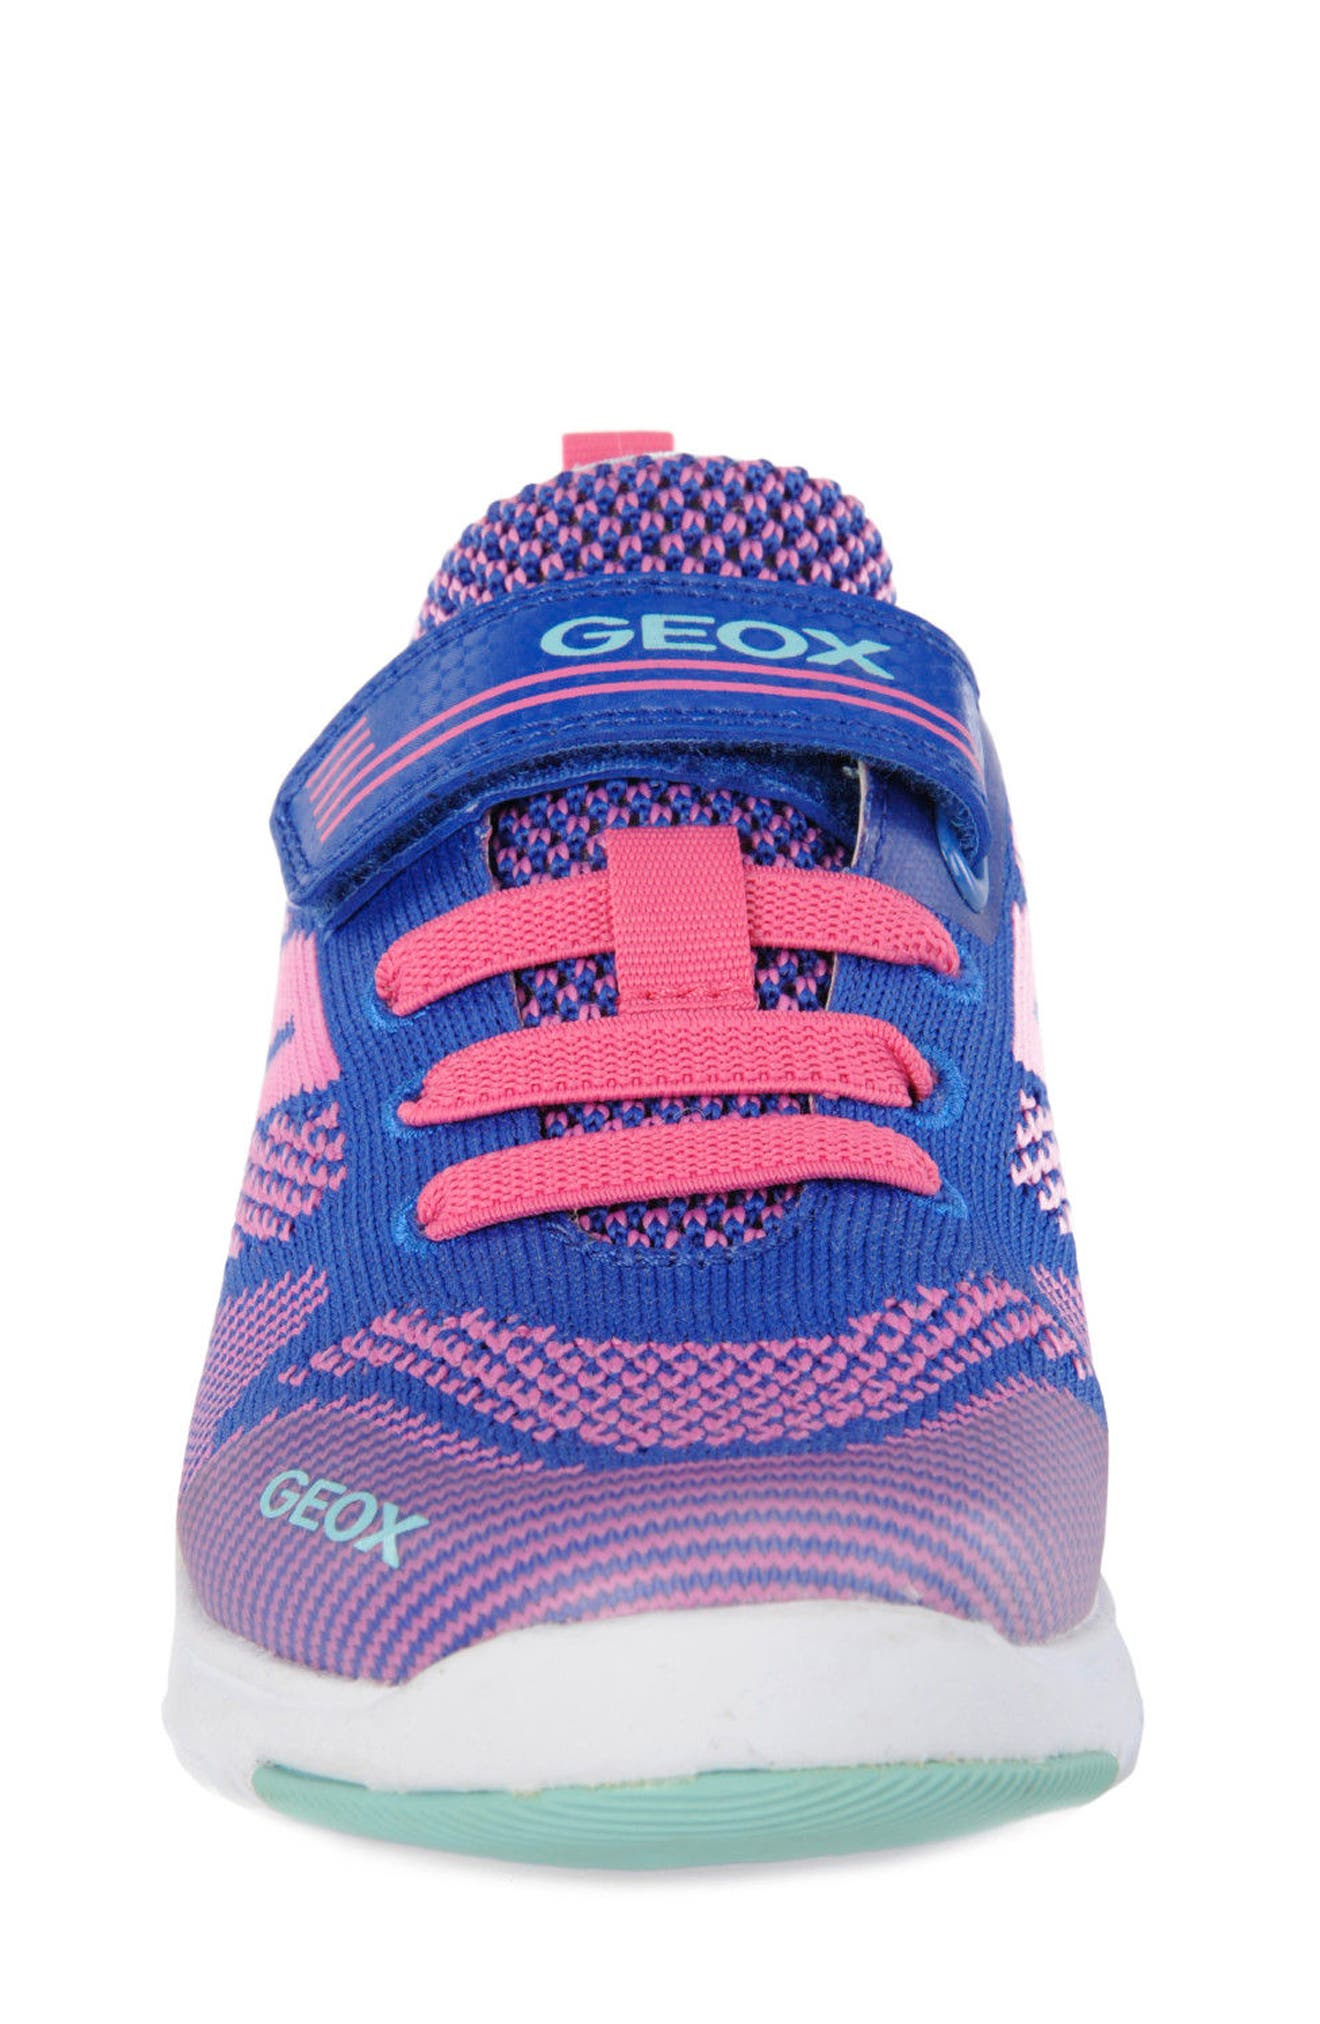 Xunday Low Top Woven Sneaker,                             Alternate thumbnail 8, color,